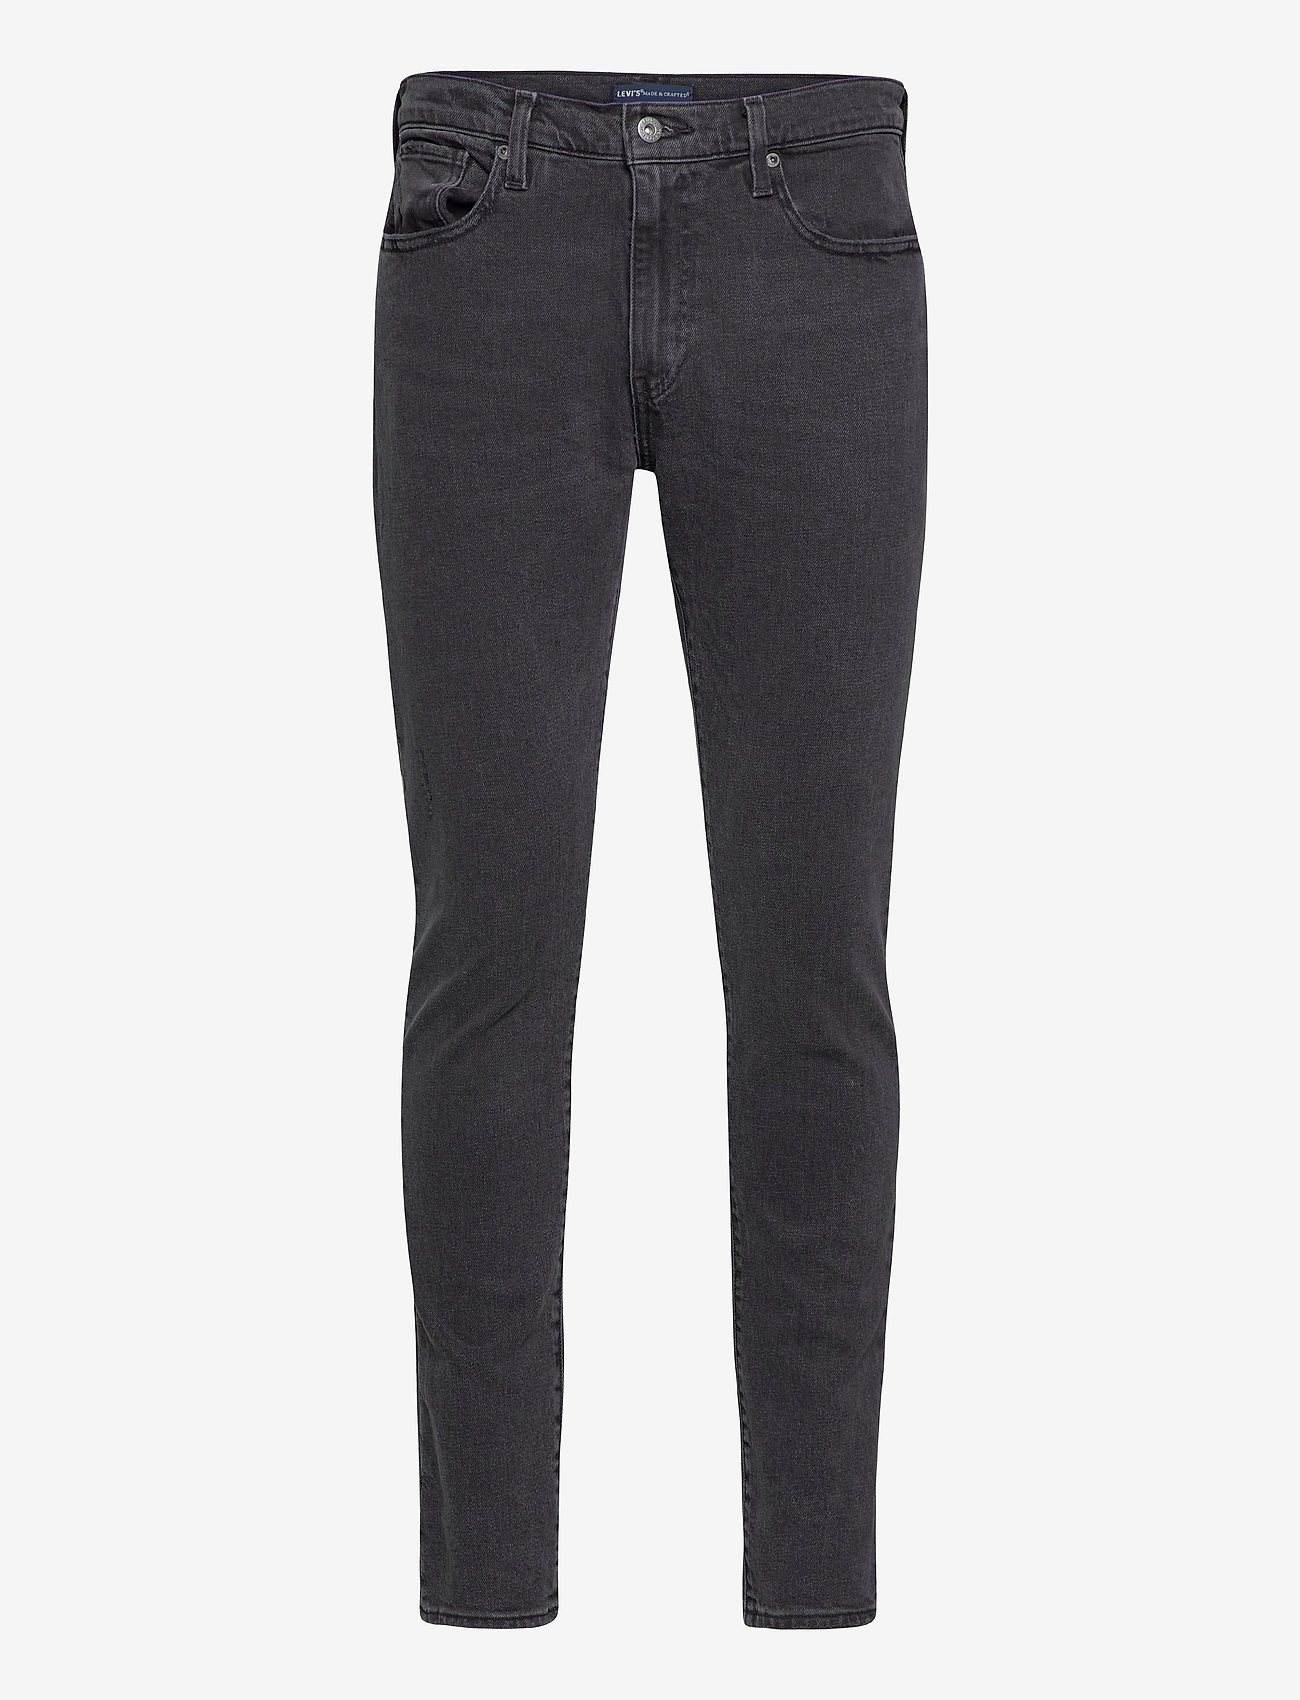 Levi's Made & Crafted - LMC 512 LMC BLACK SPARROW - slim jeans - blacks - 0